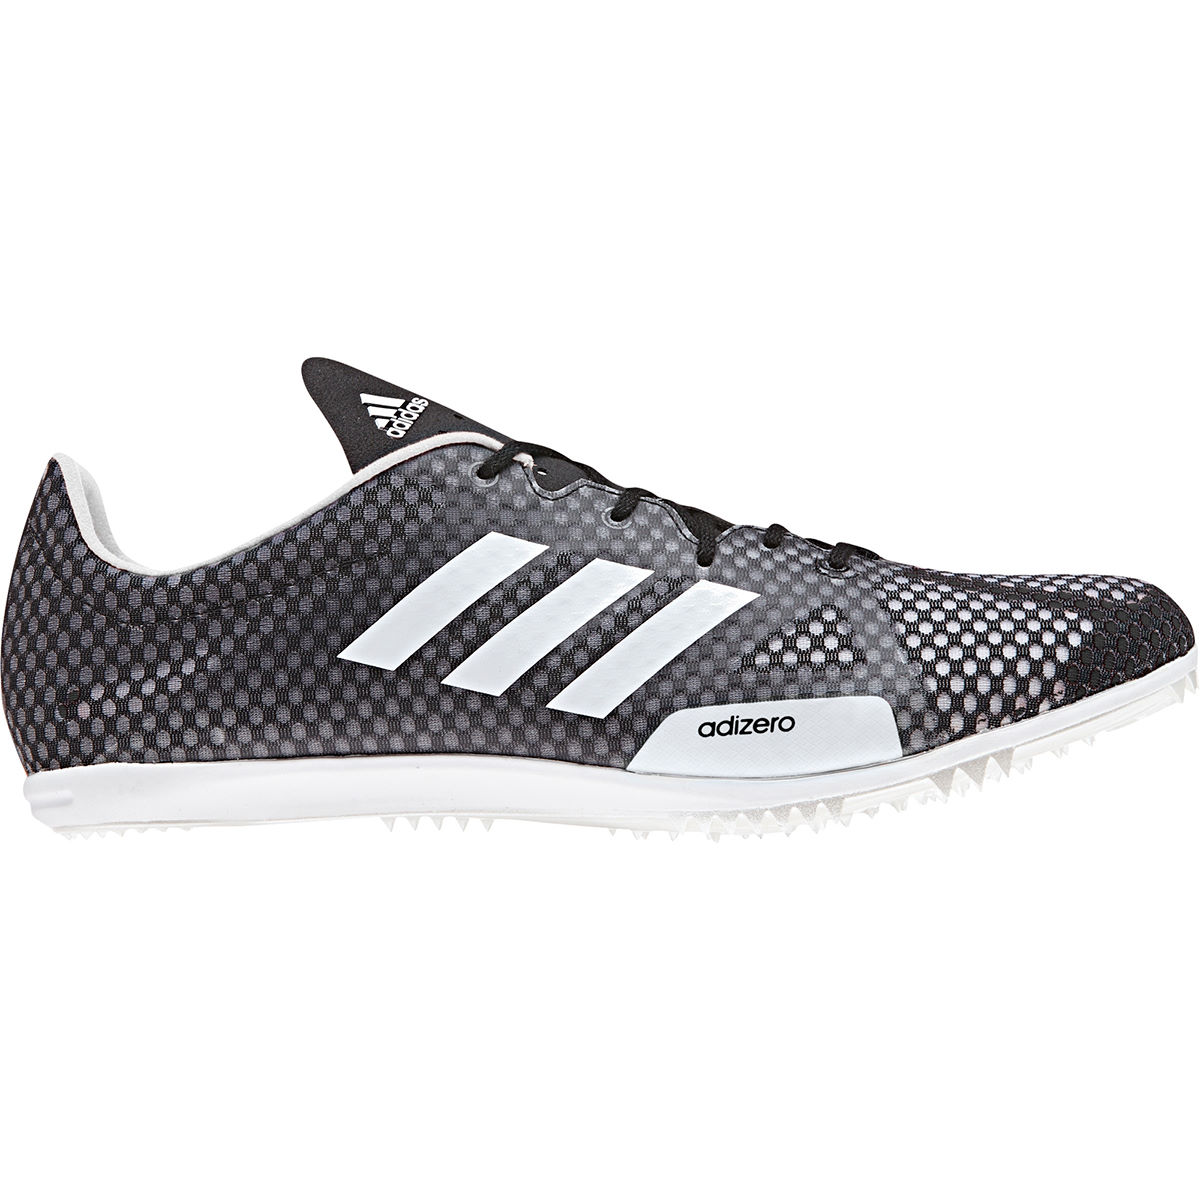 Zapatillas adidas Adizero Ambition 4 - Zapatillas de atletismo